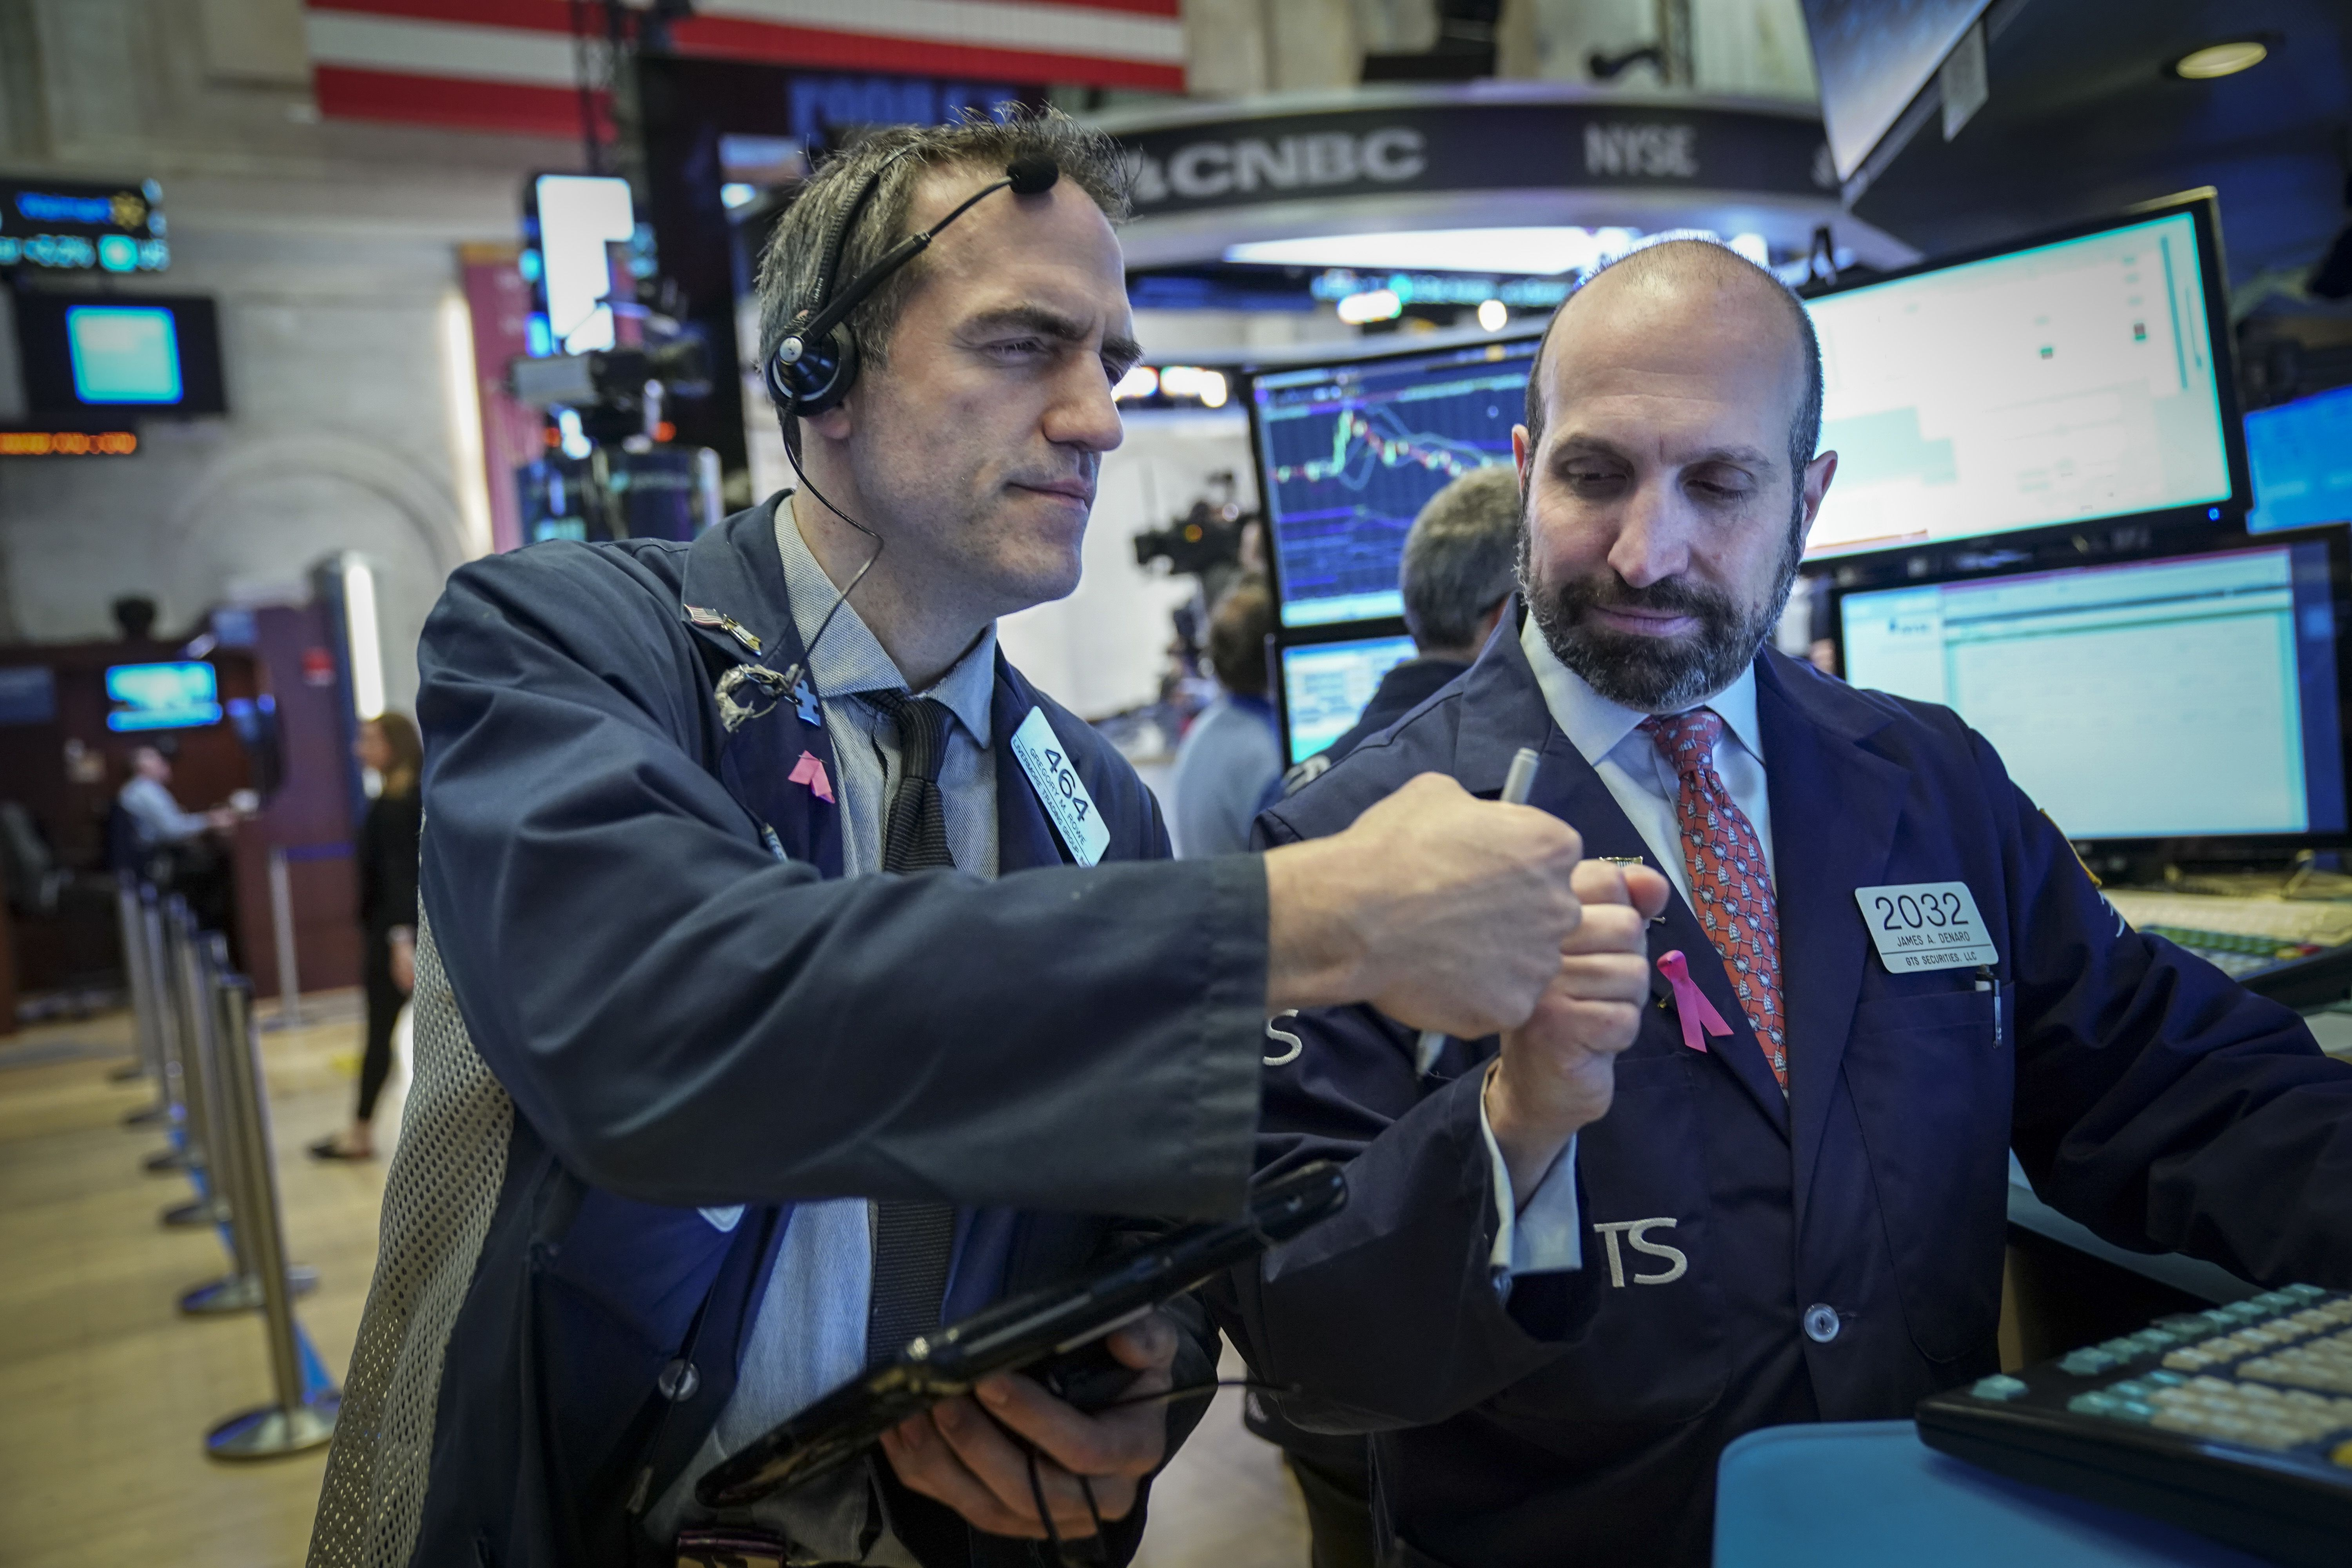 Traders and financial professionals work on the floor of the New York Stock Exchange (NYSE) ahead of the opening bell, January 4, 2019 in New York City.